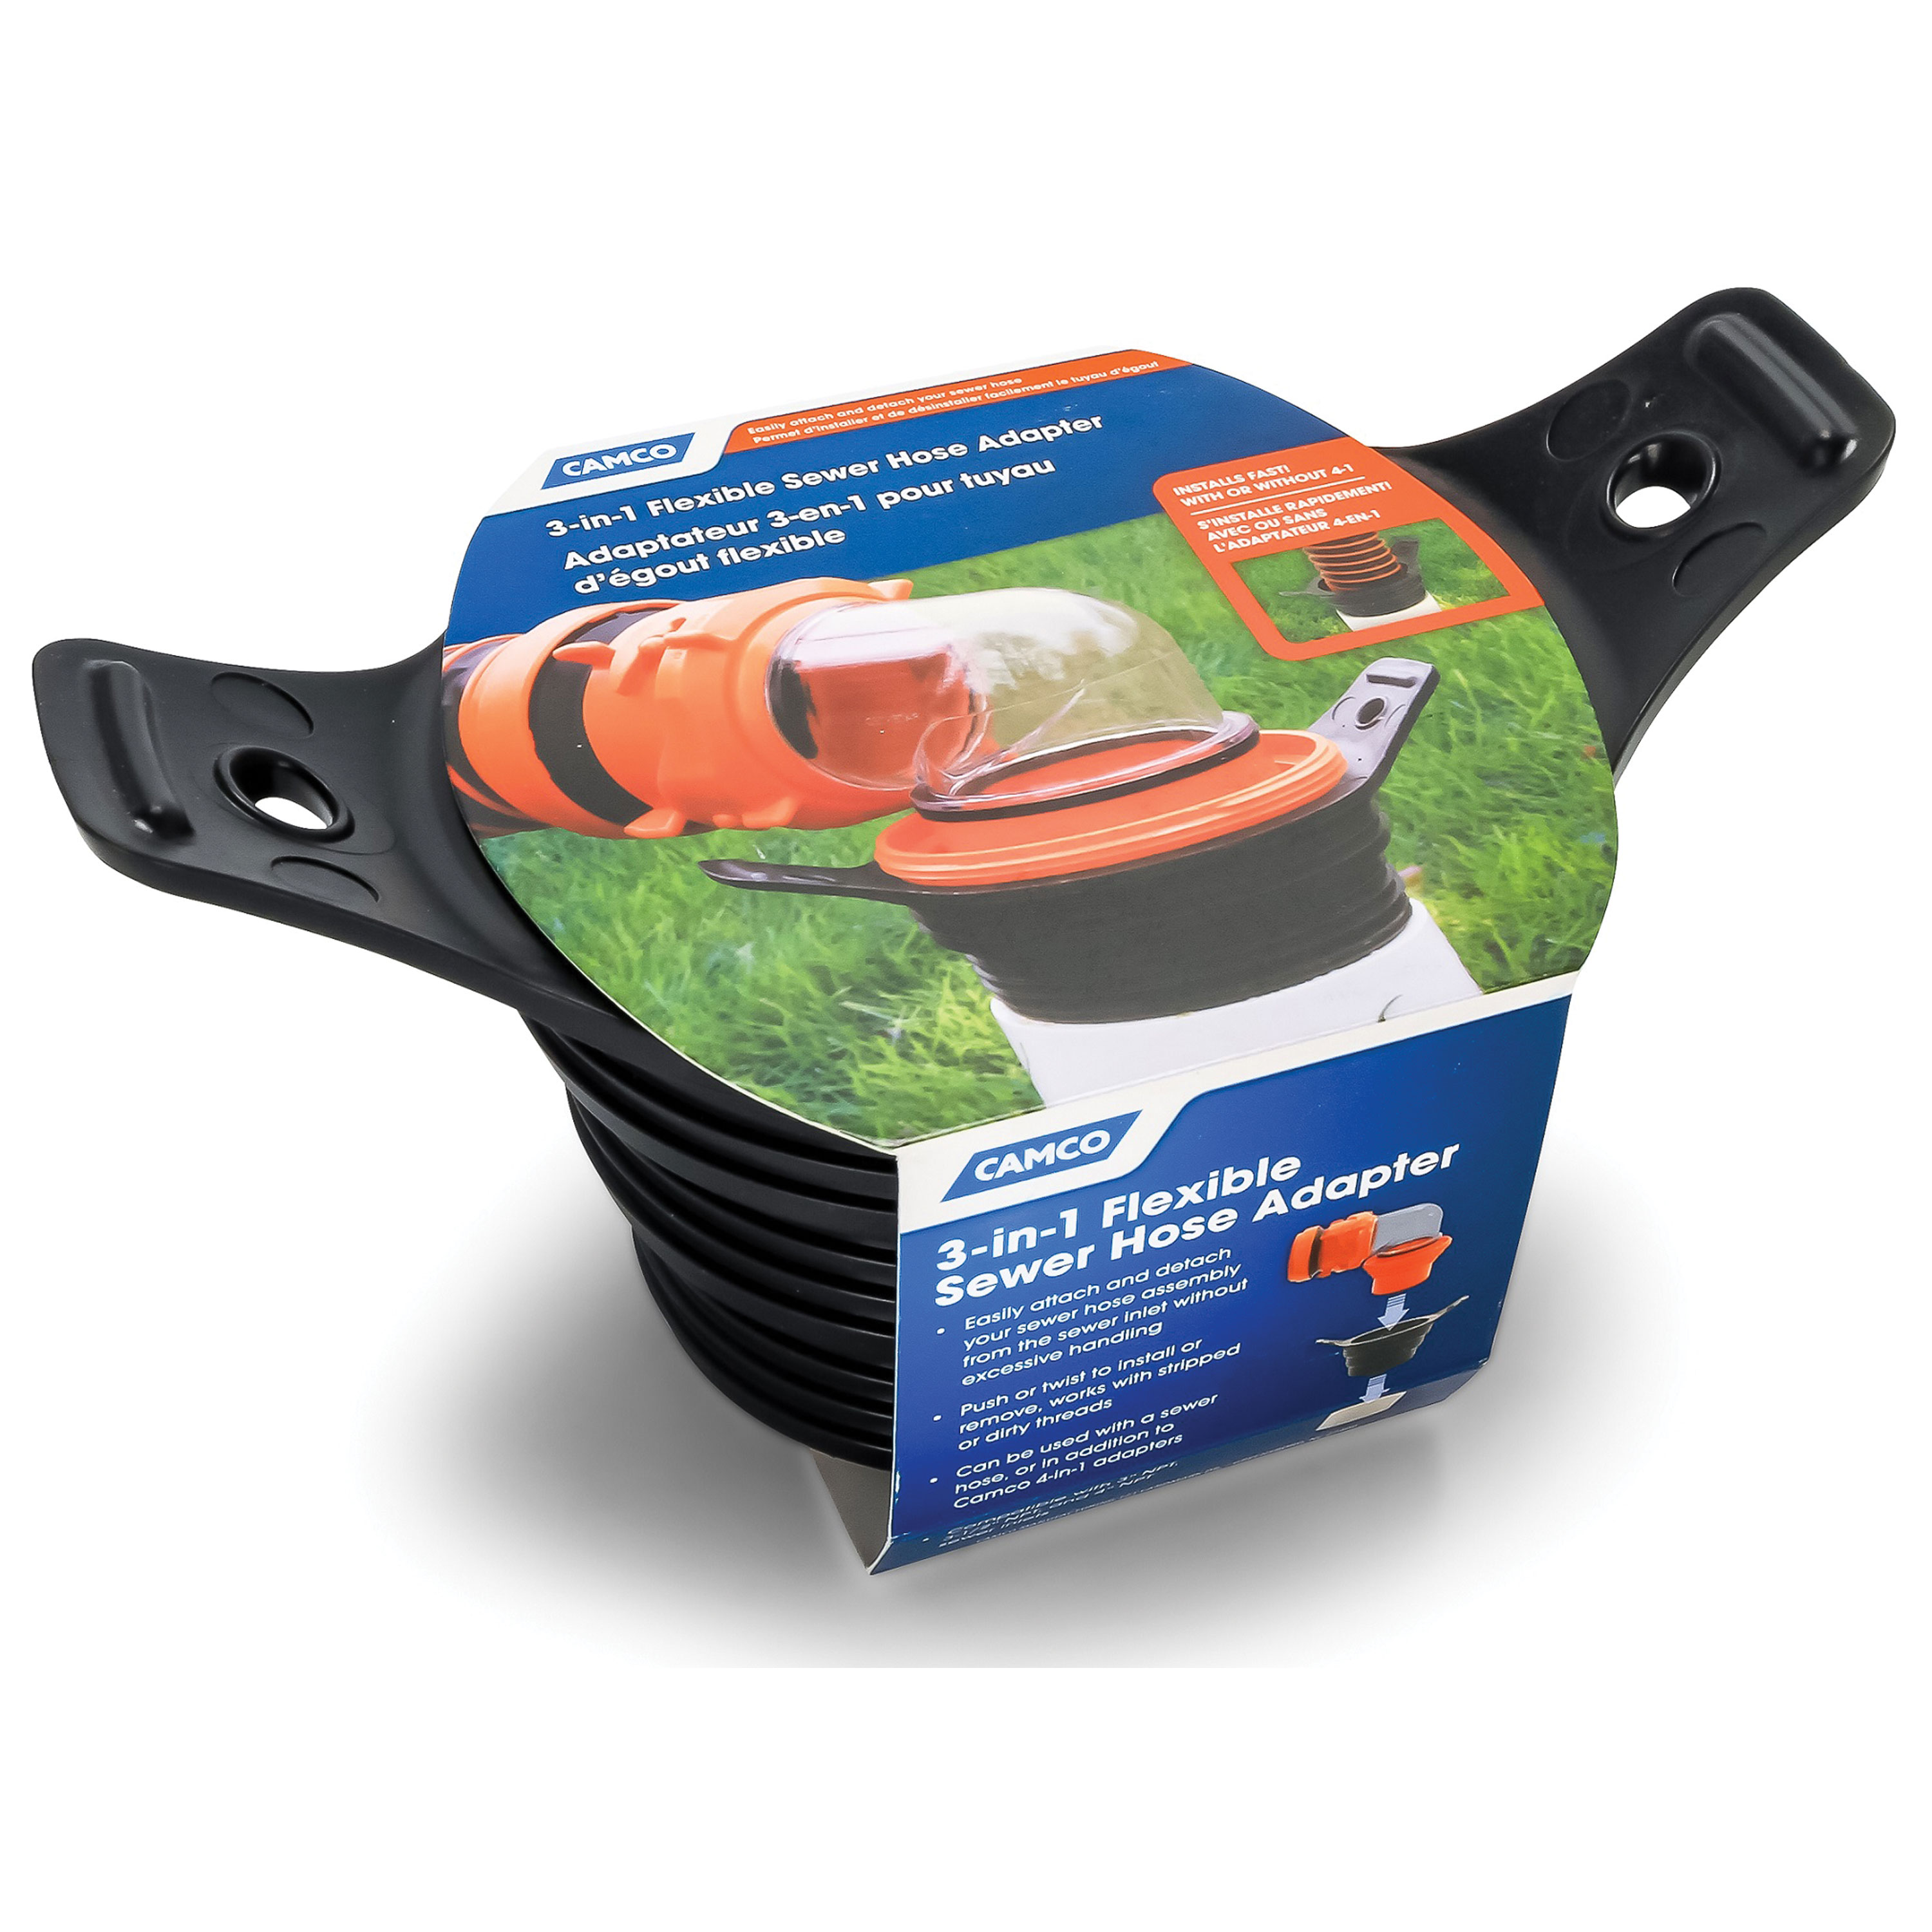 Camco 39318 Flexible 3-in-1 Sewer Hose Seal - Black